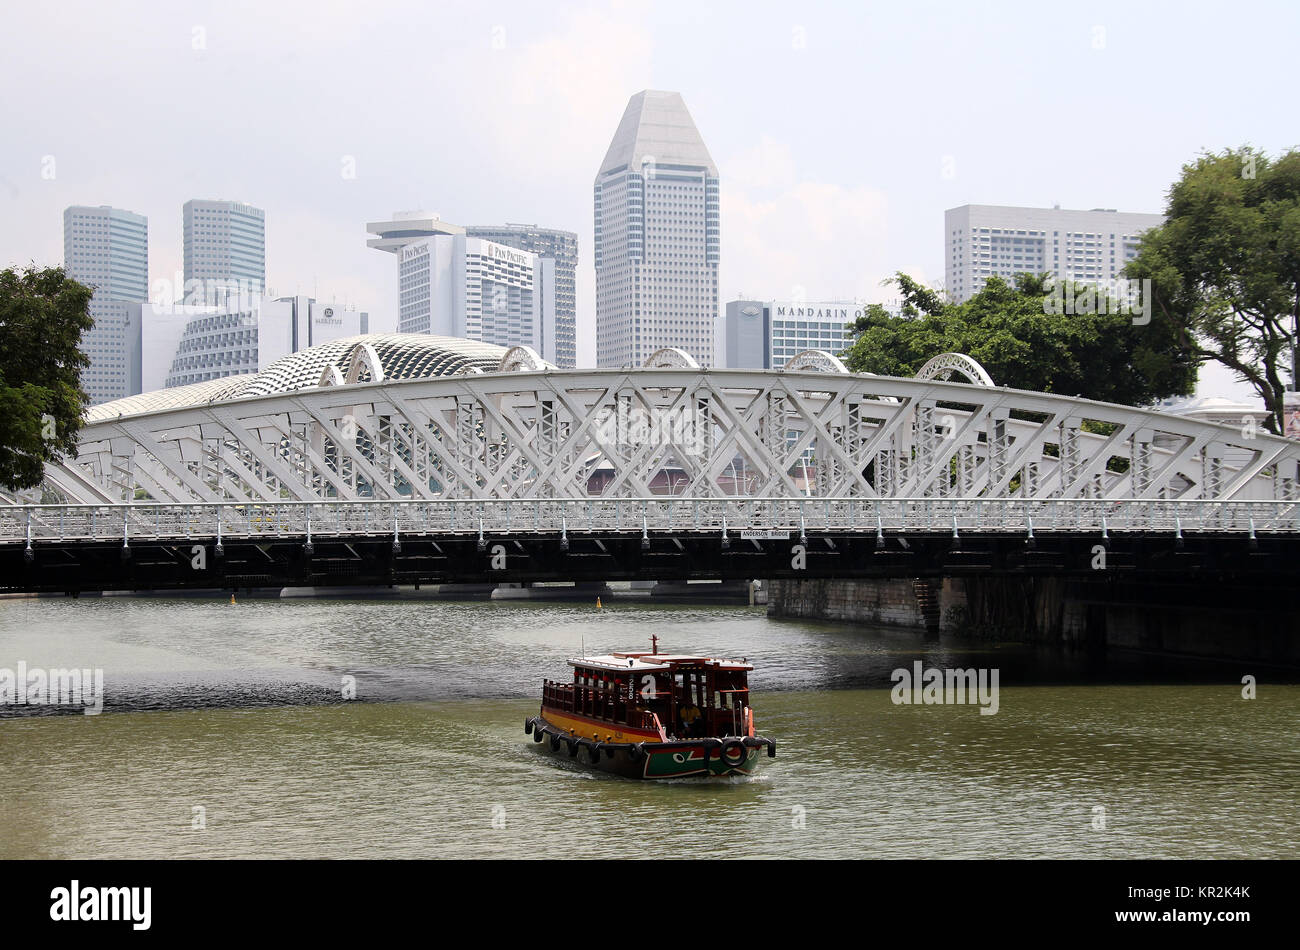 Boat on the Singapore River Stock Photo